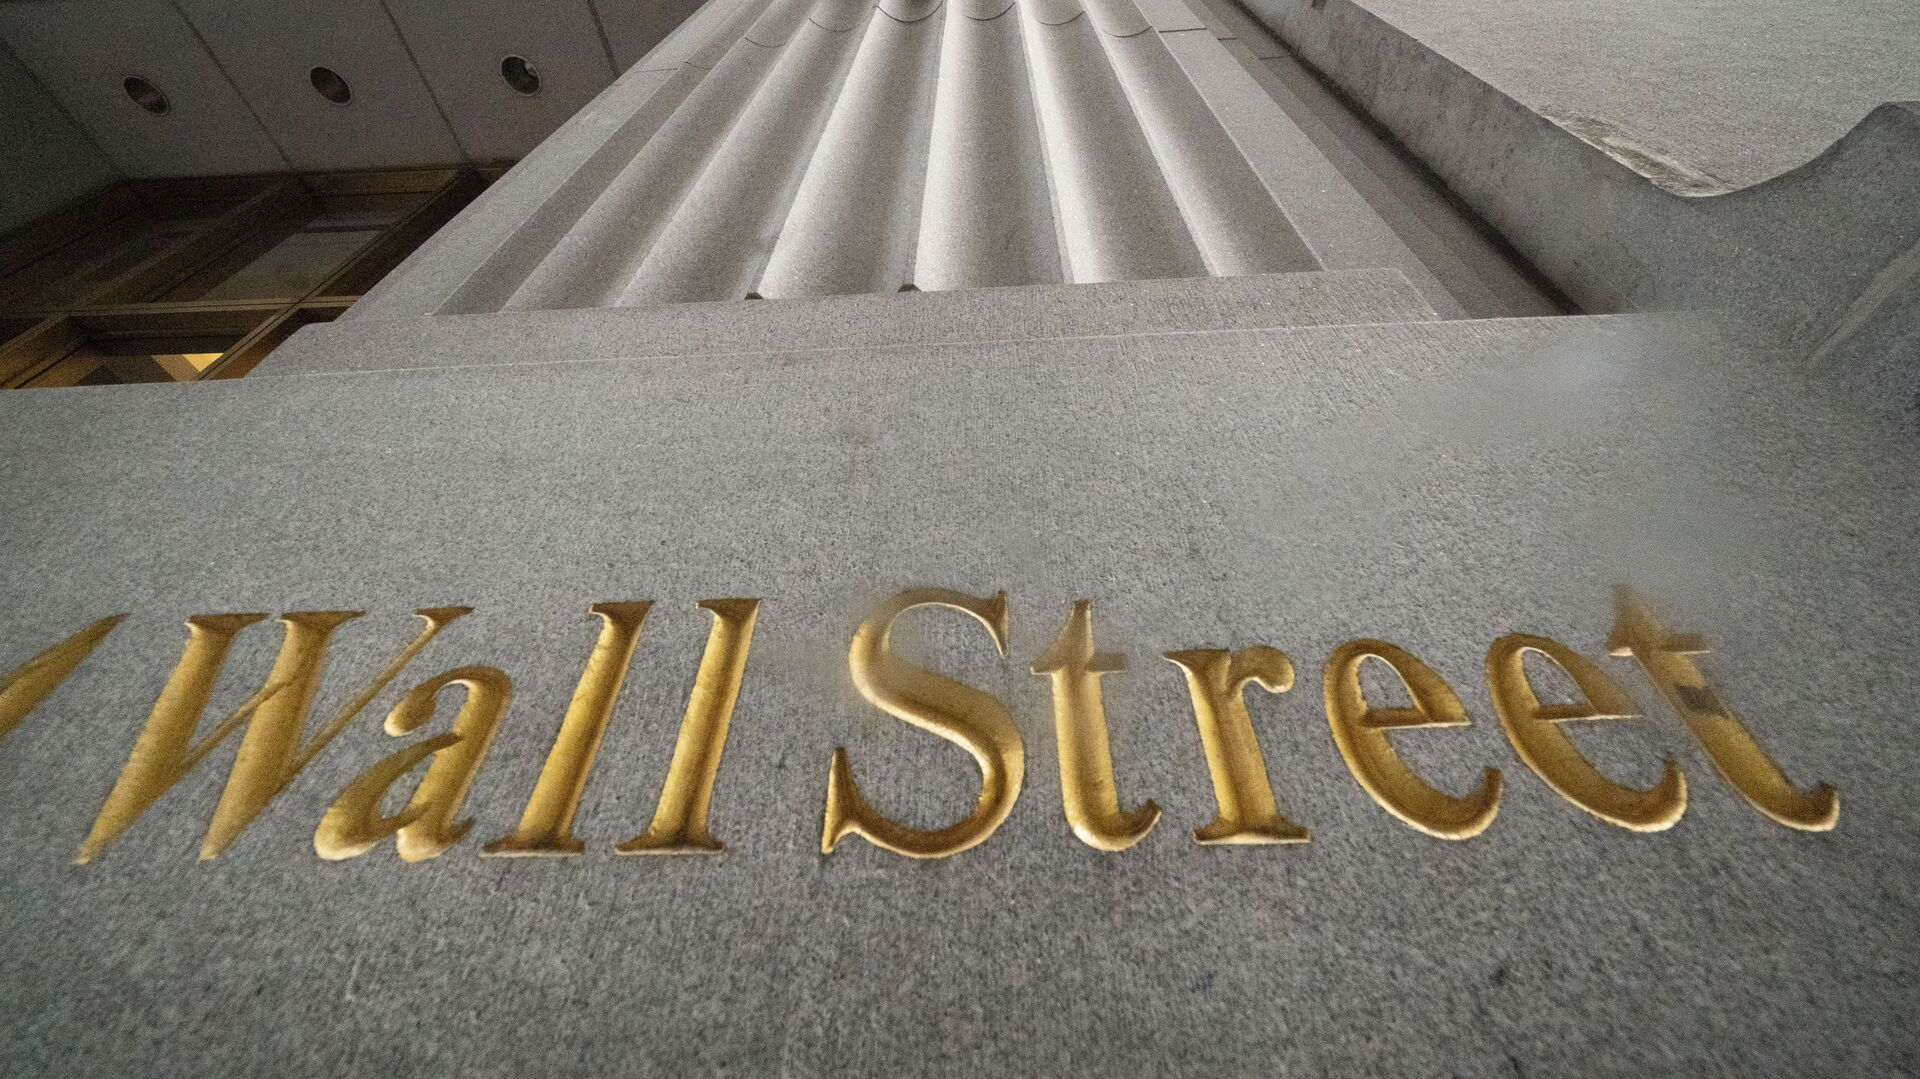 n this Nov. 5, 2020 file photo, a sign for Wall Street is carved in the side of a building. Stocks are easing lower in early trading on Wall Street, pulling major indexes slightly below the record highs they reached last week. - Sputnik International, 1920, 13.10.2021